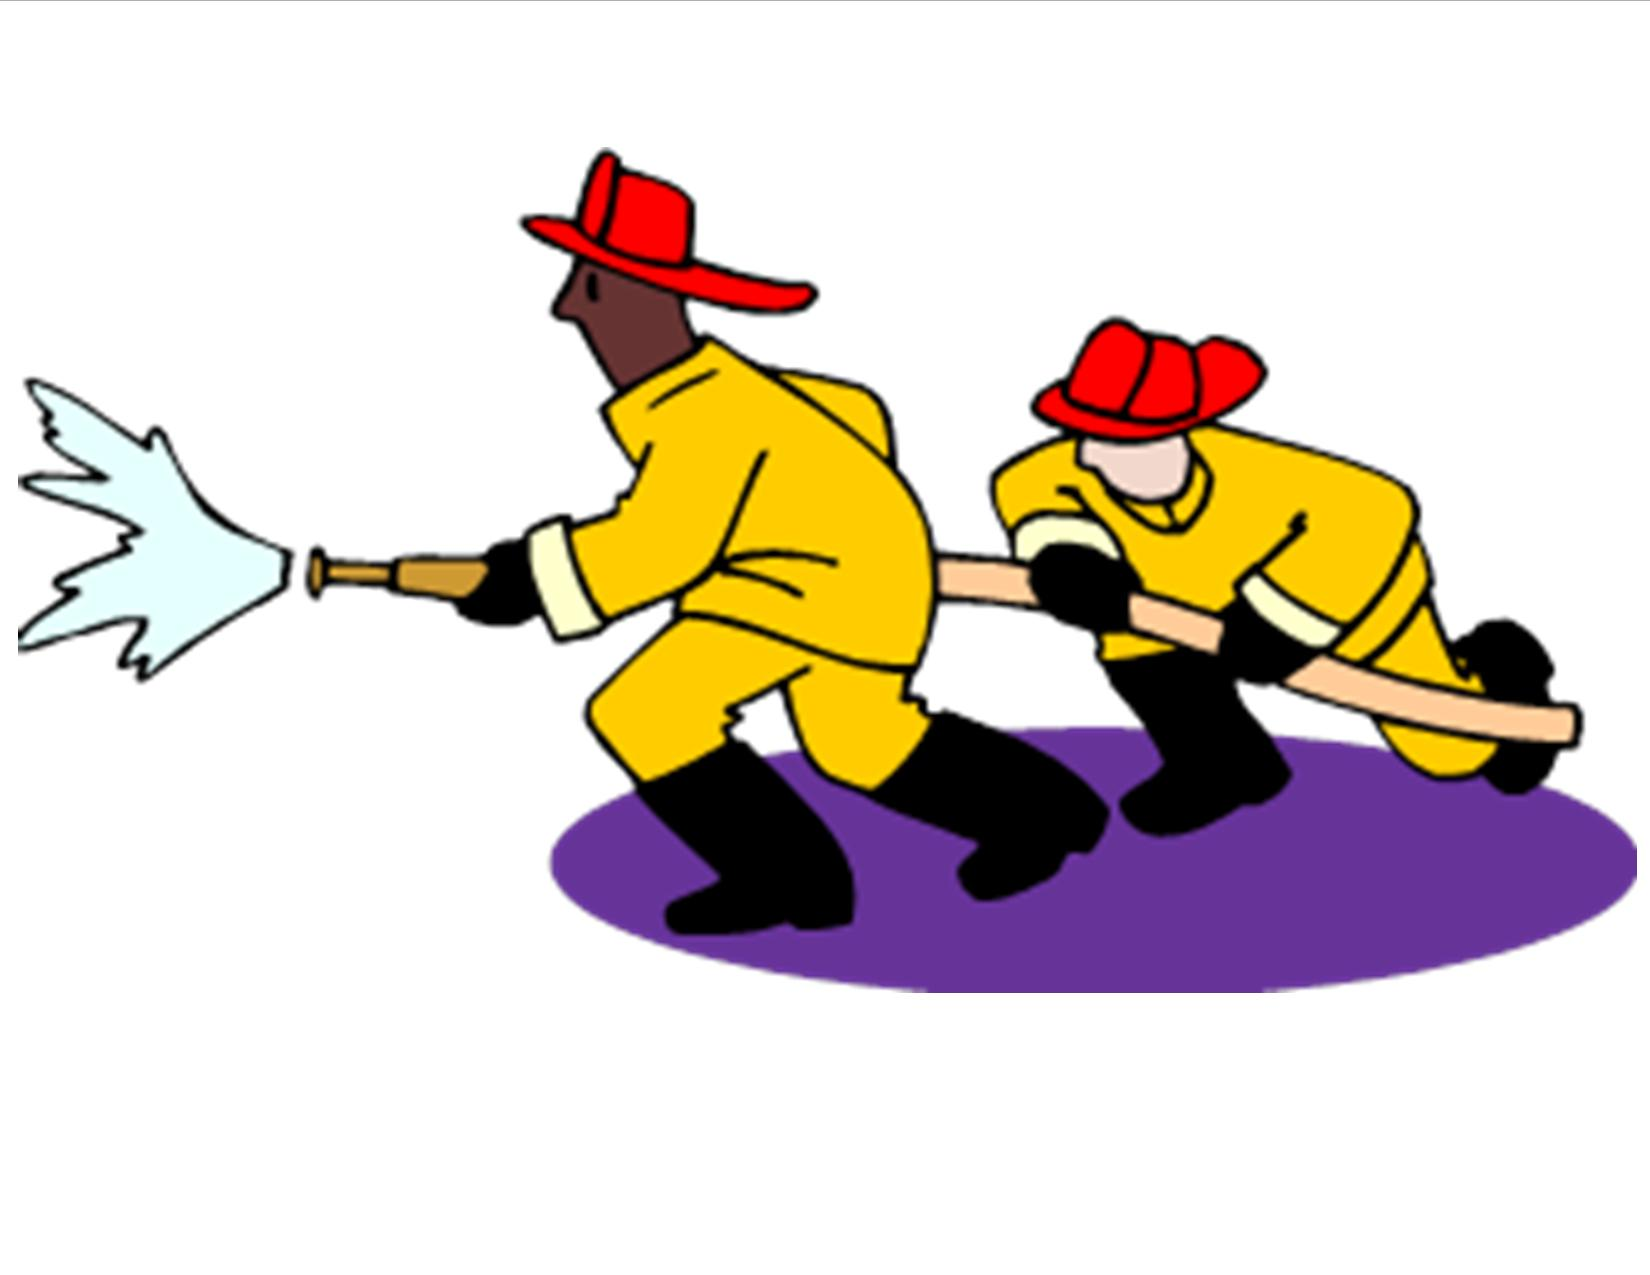 Fire Safety Clip Art N7 free image.